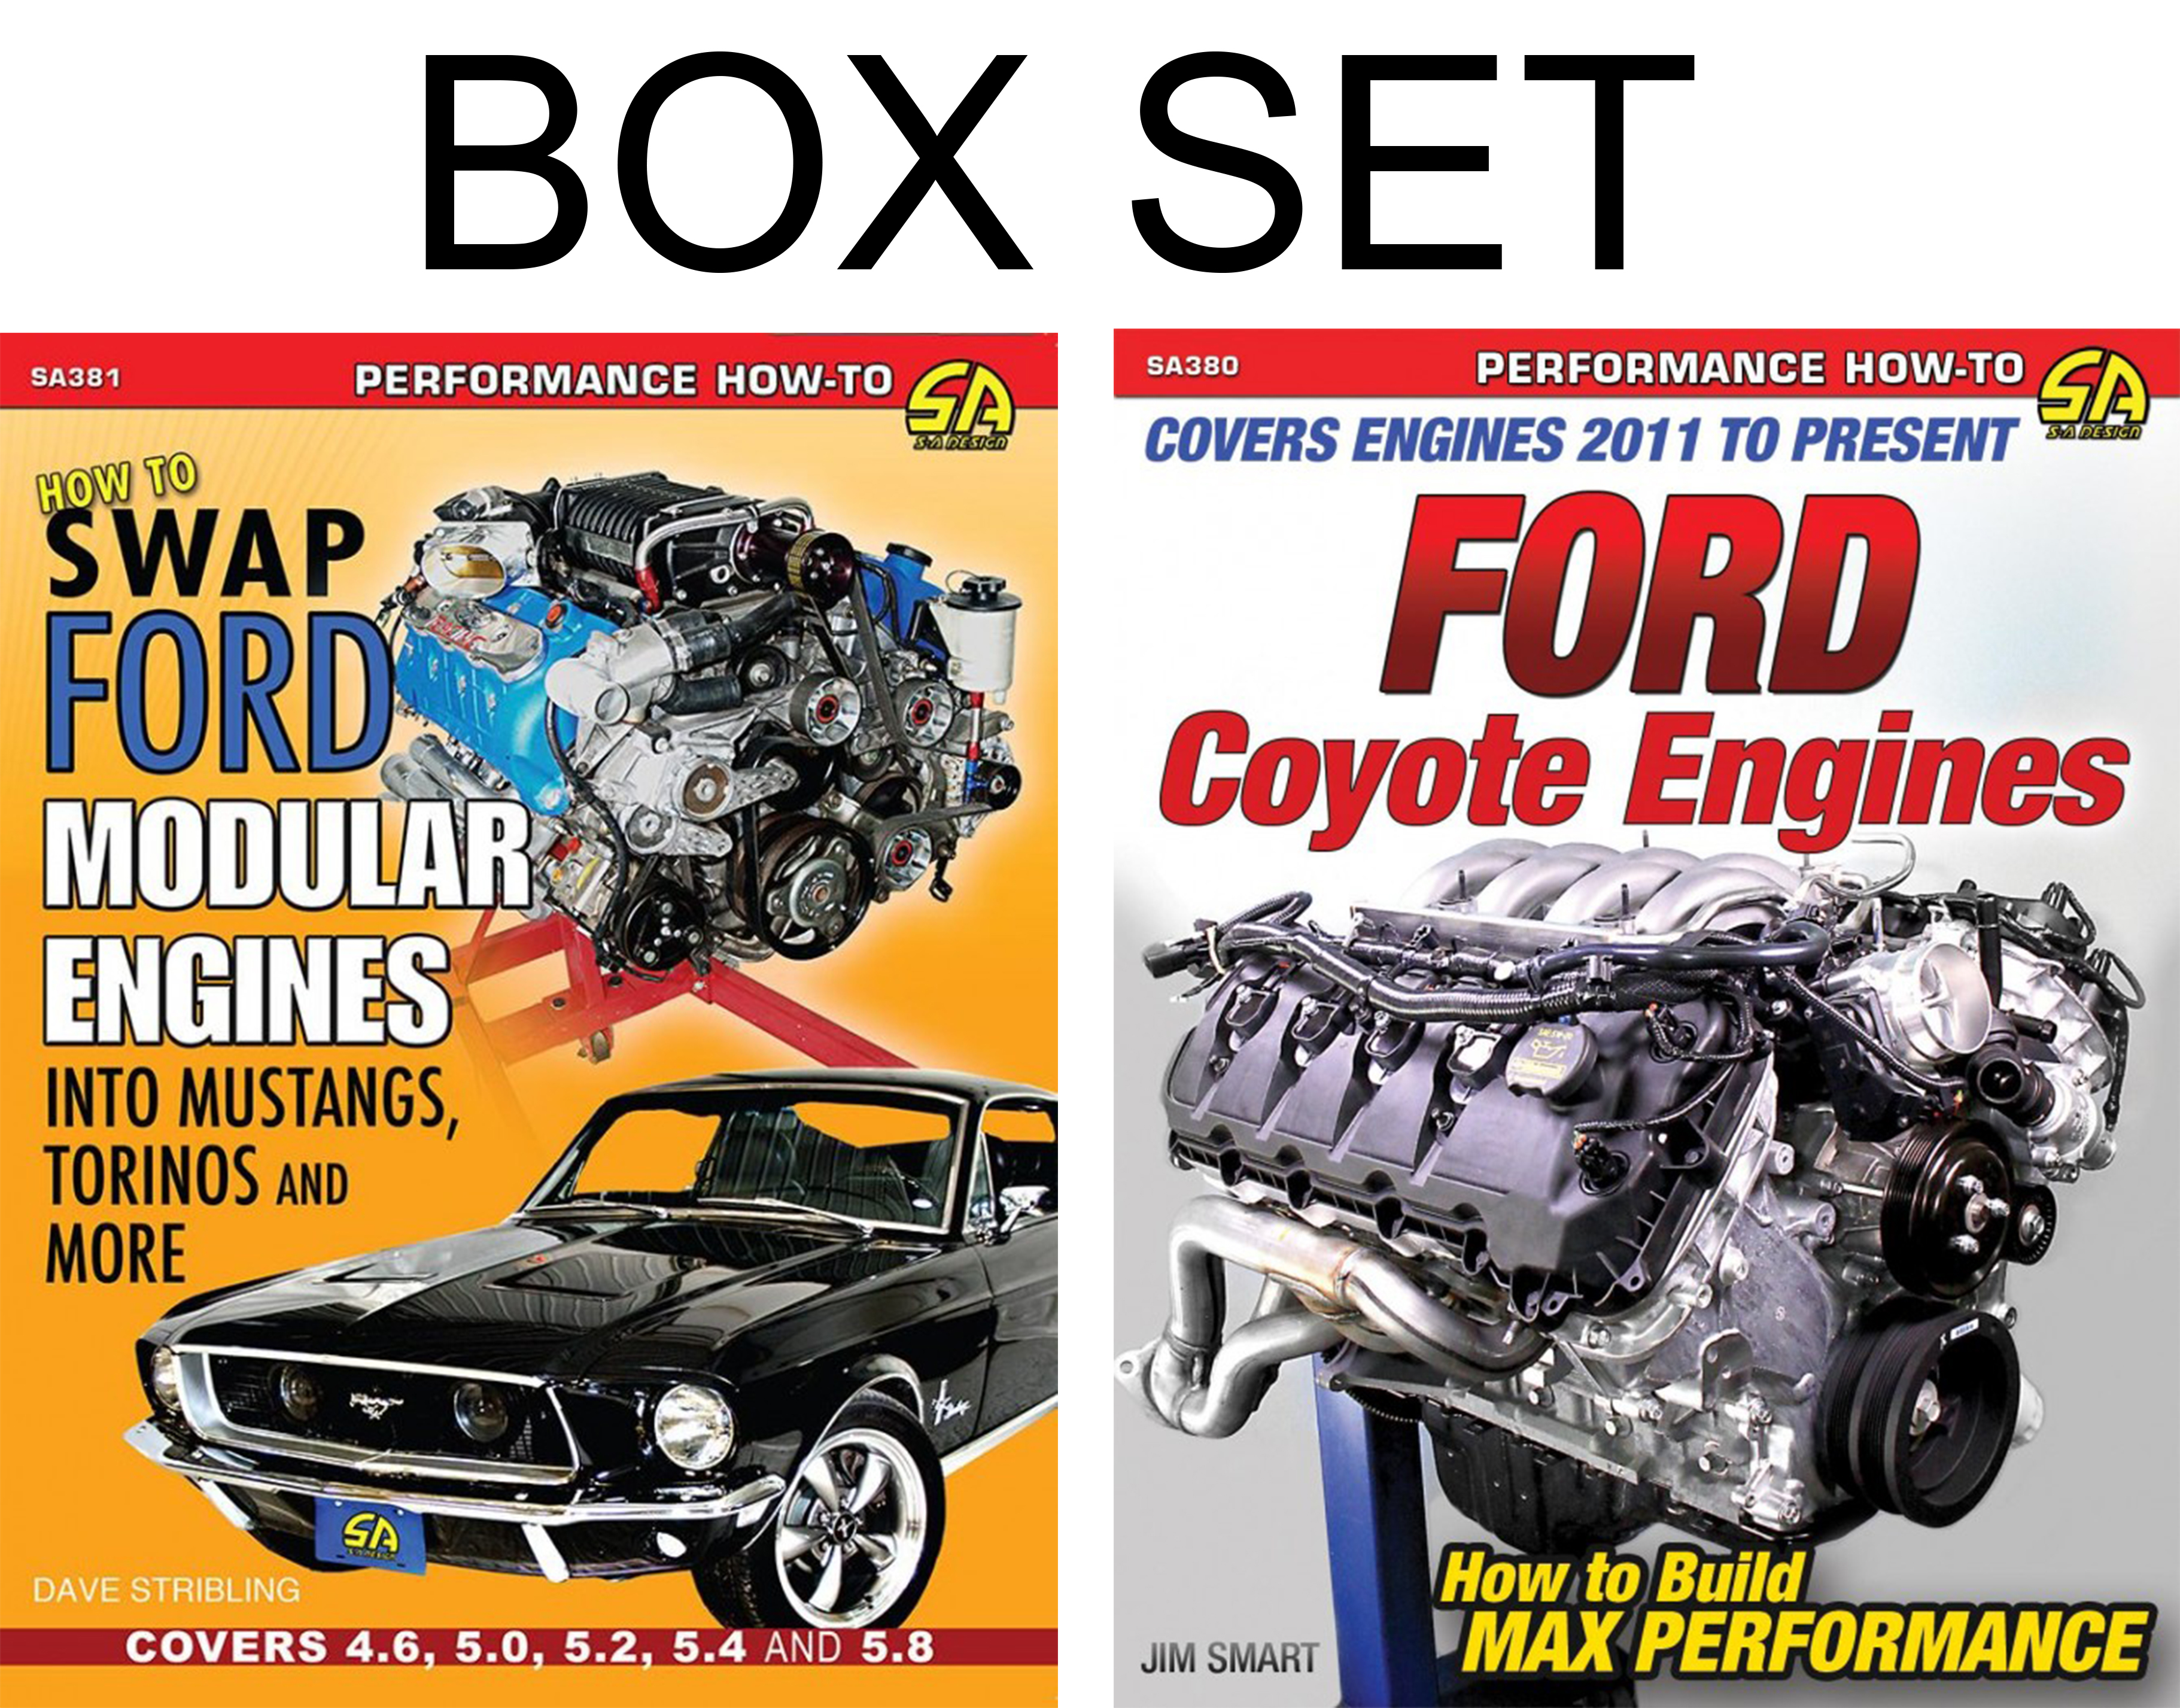 Sentinel ford mustang coyote engines how to swap ford modular engines book box set